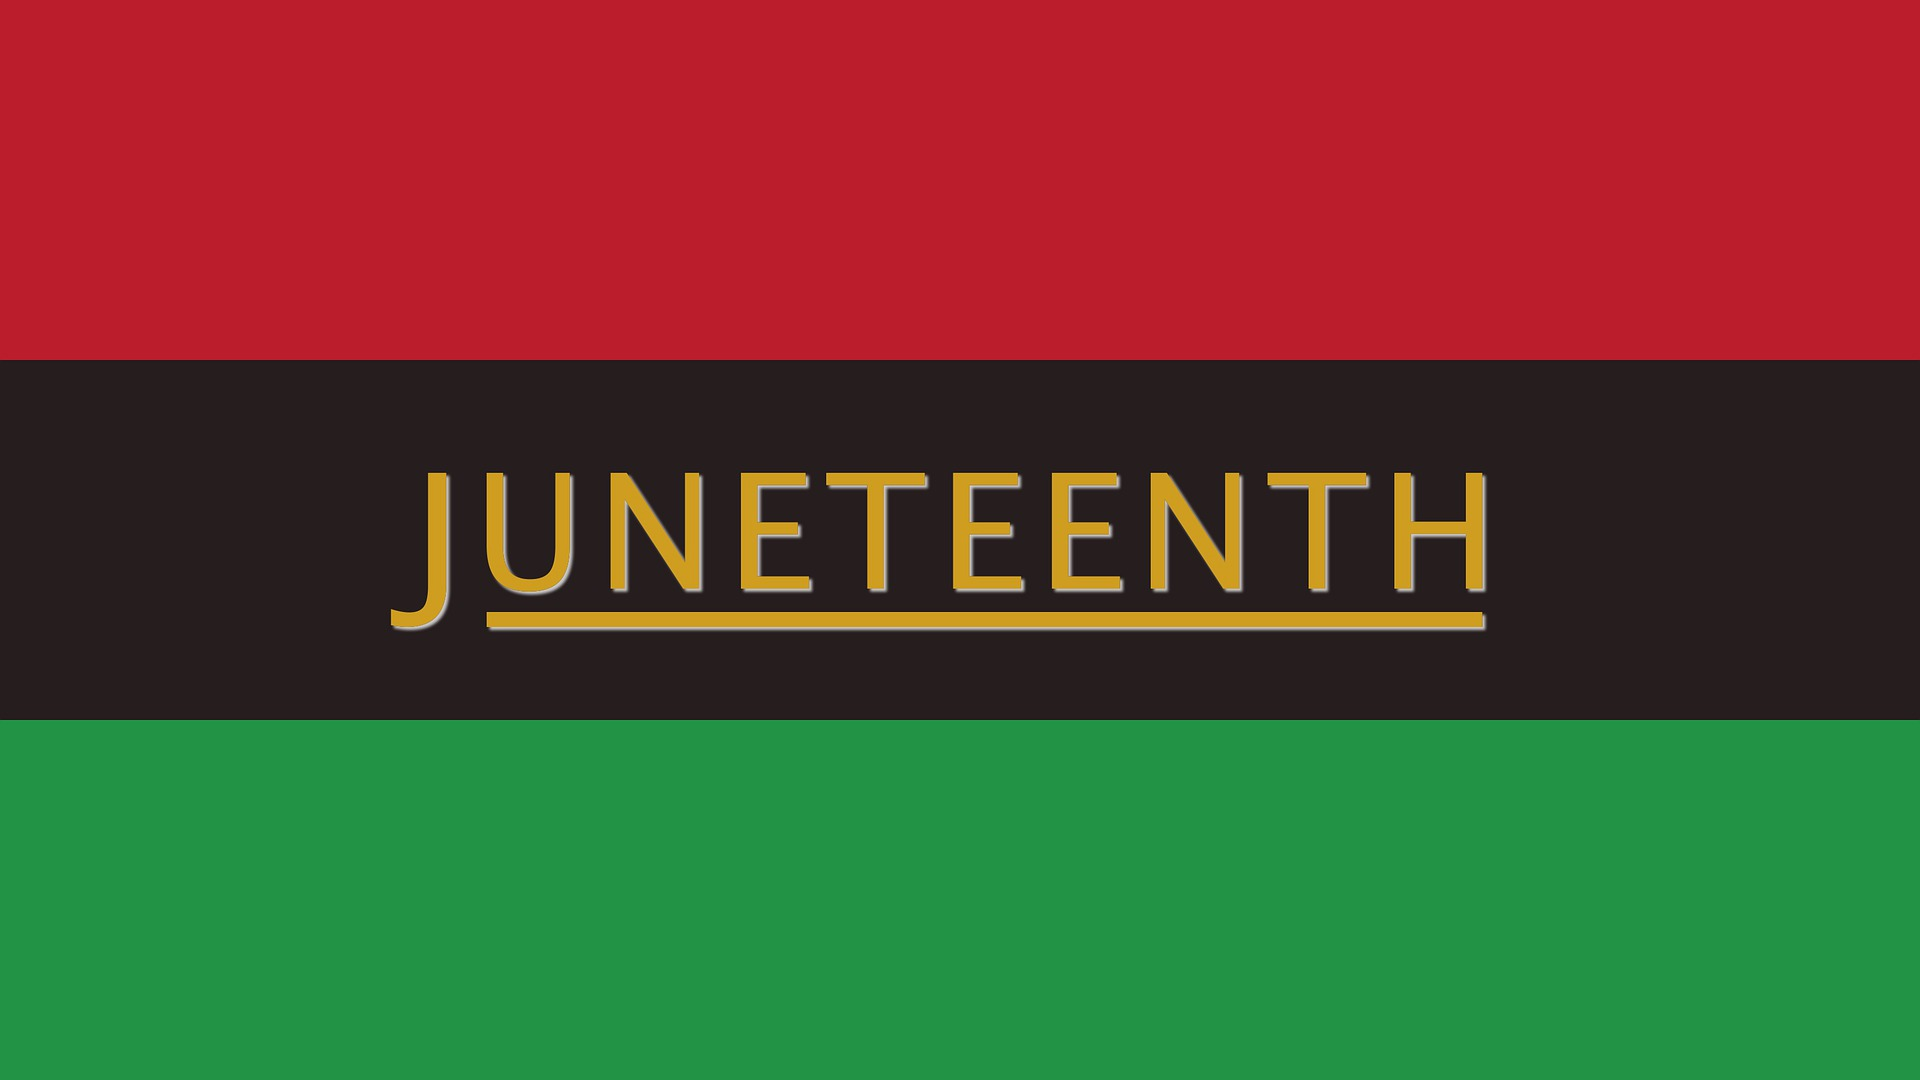 Juneteenth to Be a National Holiday From Now as Congress Passes Bill